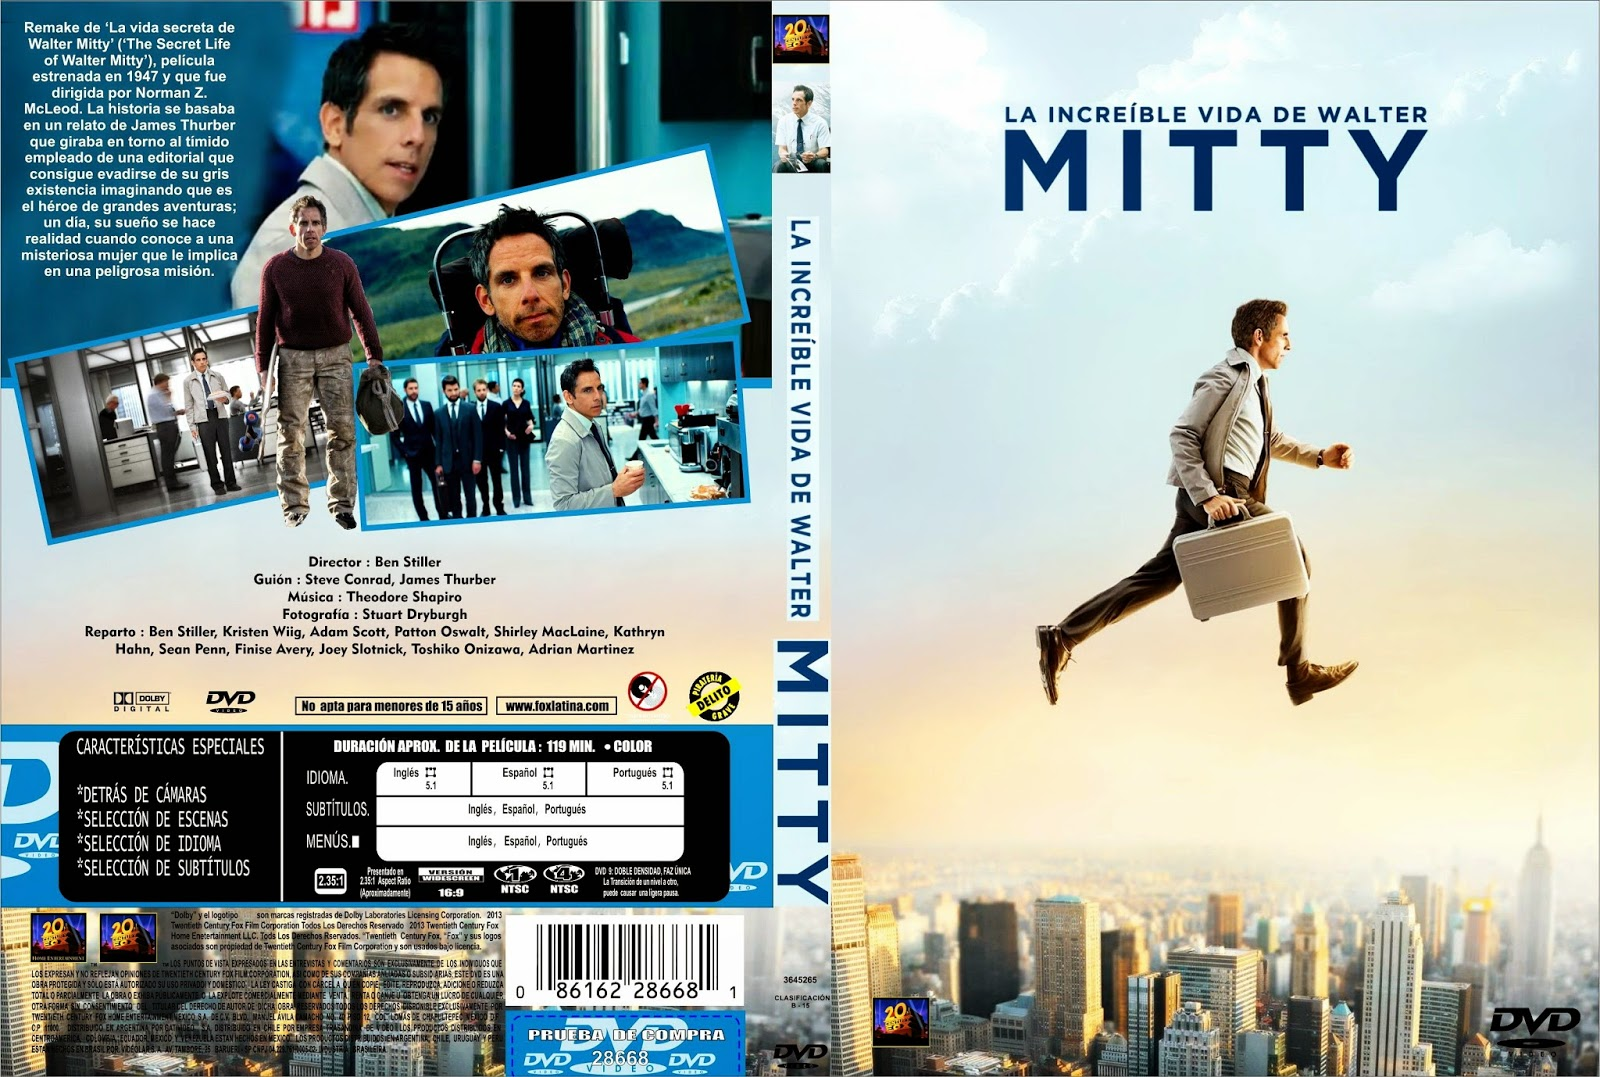 character analysis of walter mitty in the secret life of walter mitty a short story by james thurber The secret life of walter mitty by james thurber, 1939 (short story.